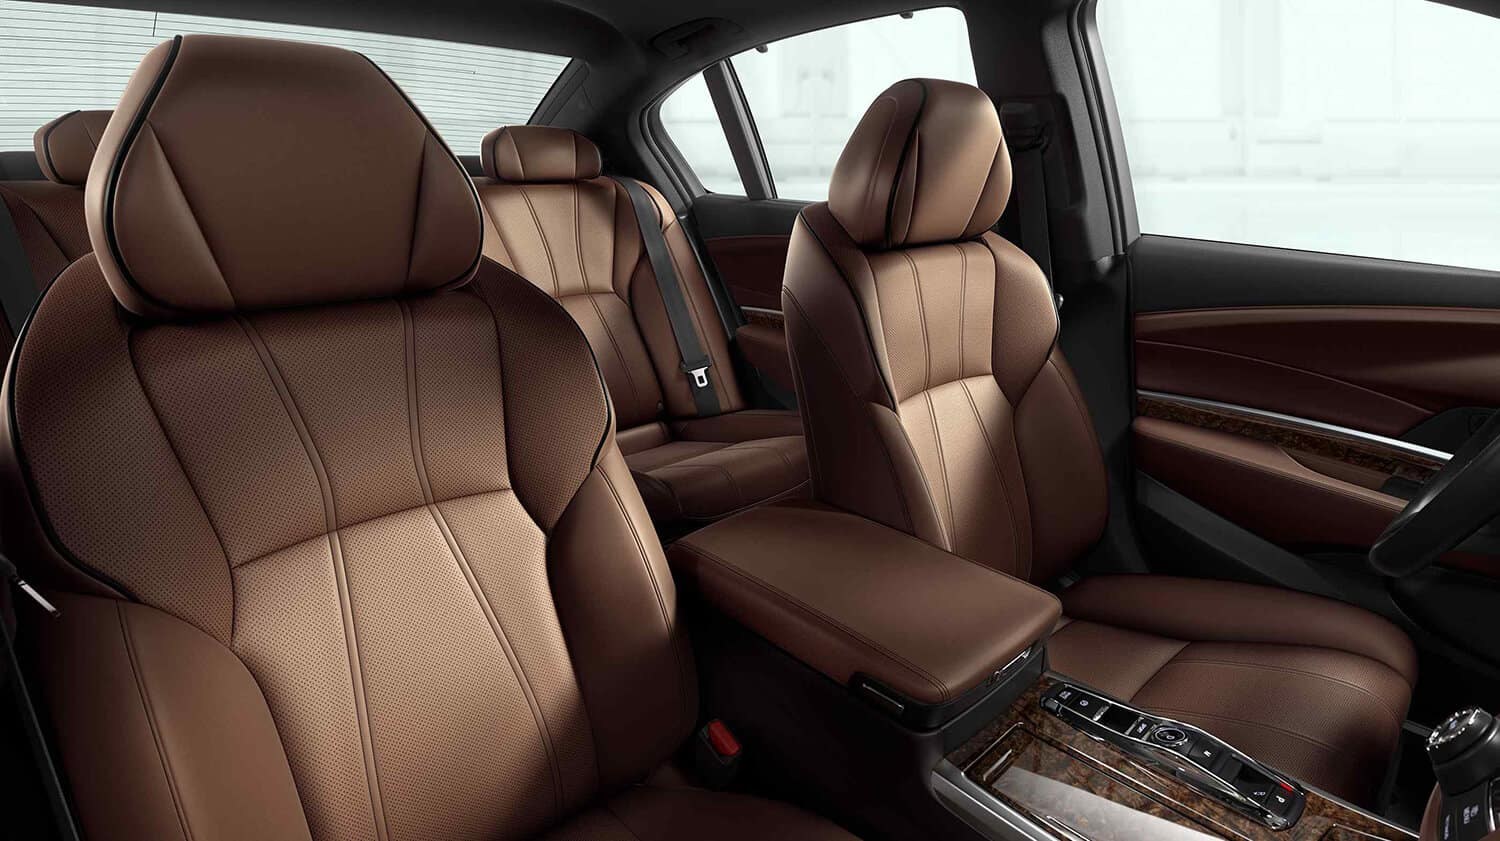 2018 Acura RLX Interior Seating